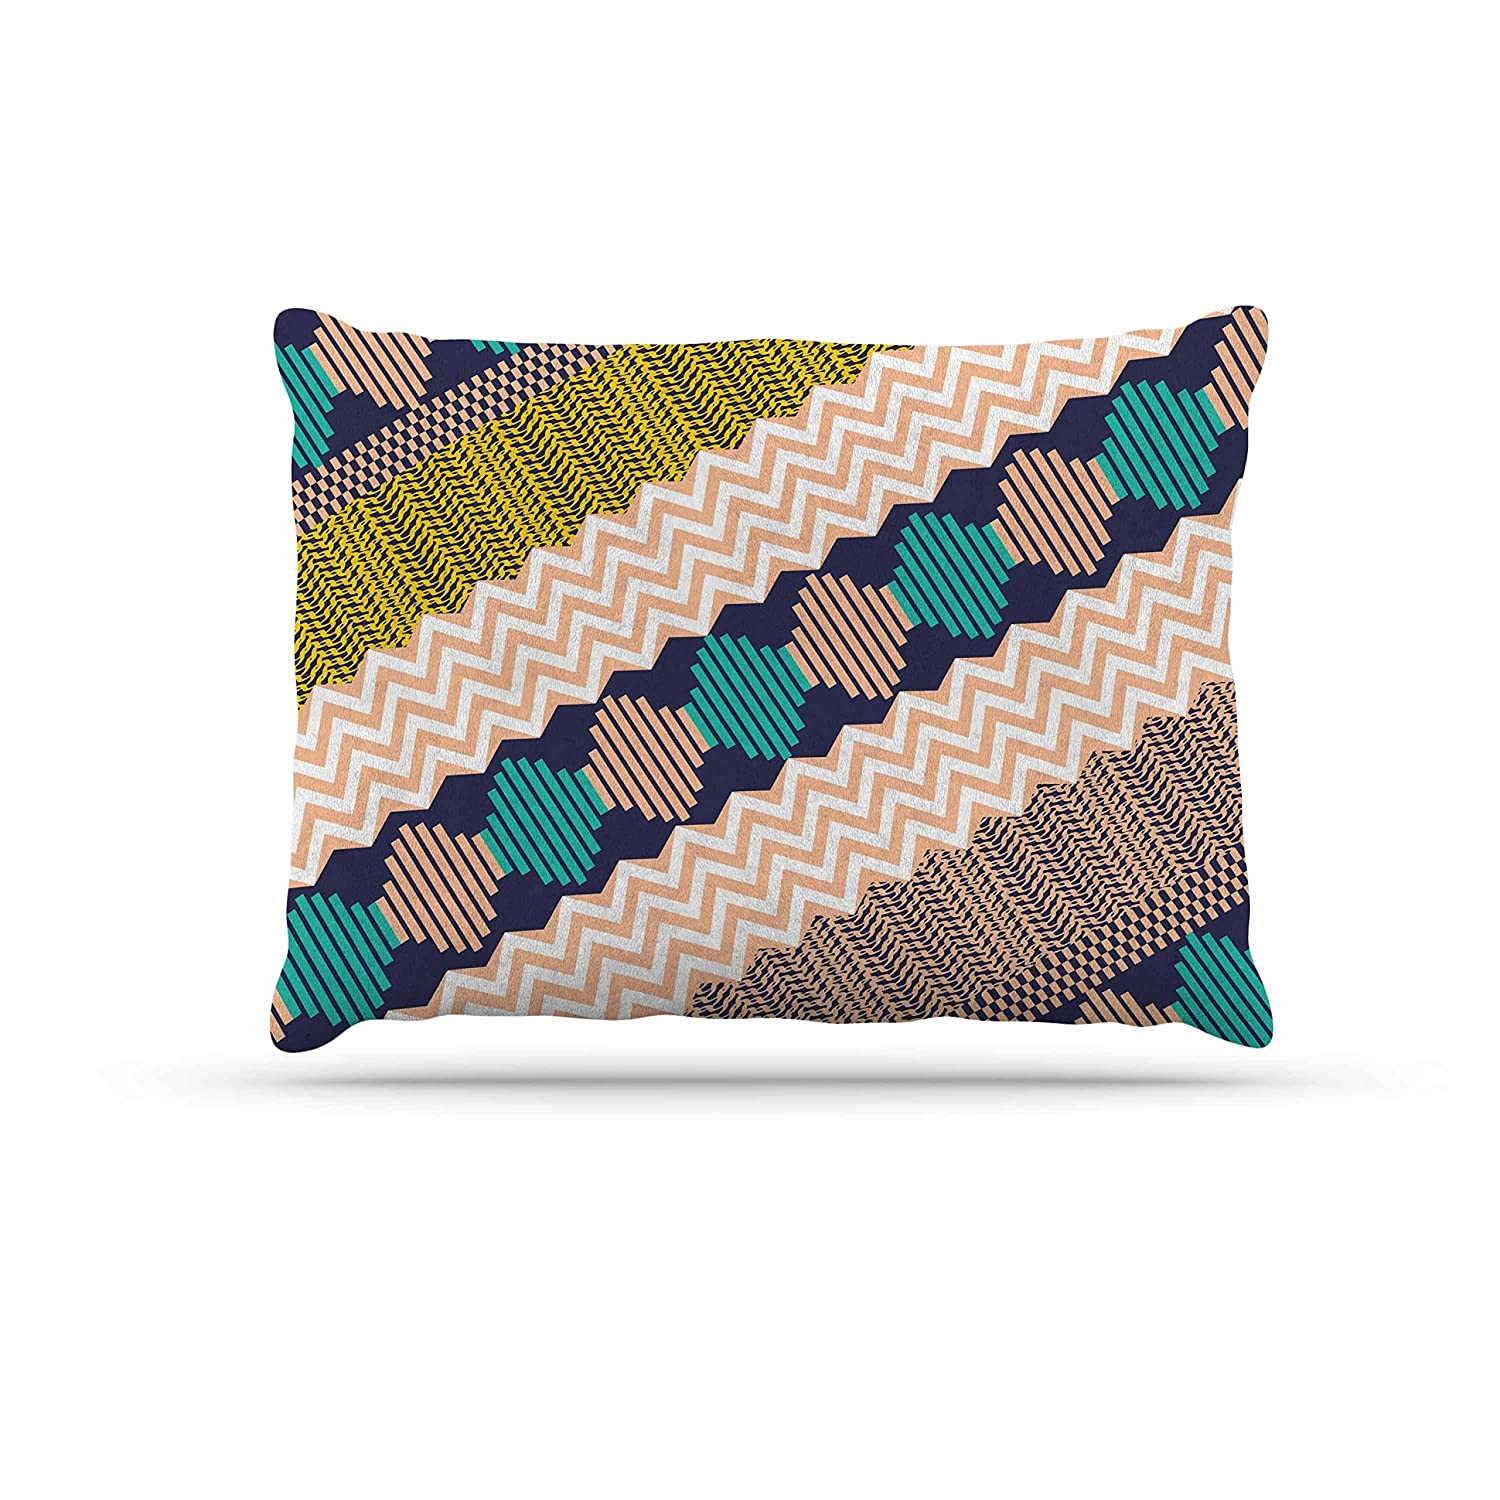 KESS InHouse Akwaflorell Knitted 3  Coral Teal Pattern Dog Bed, 30  x 40